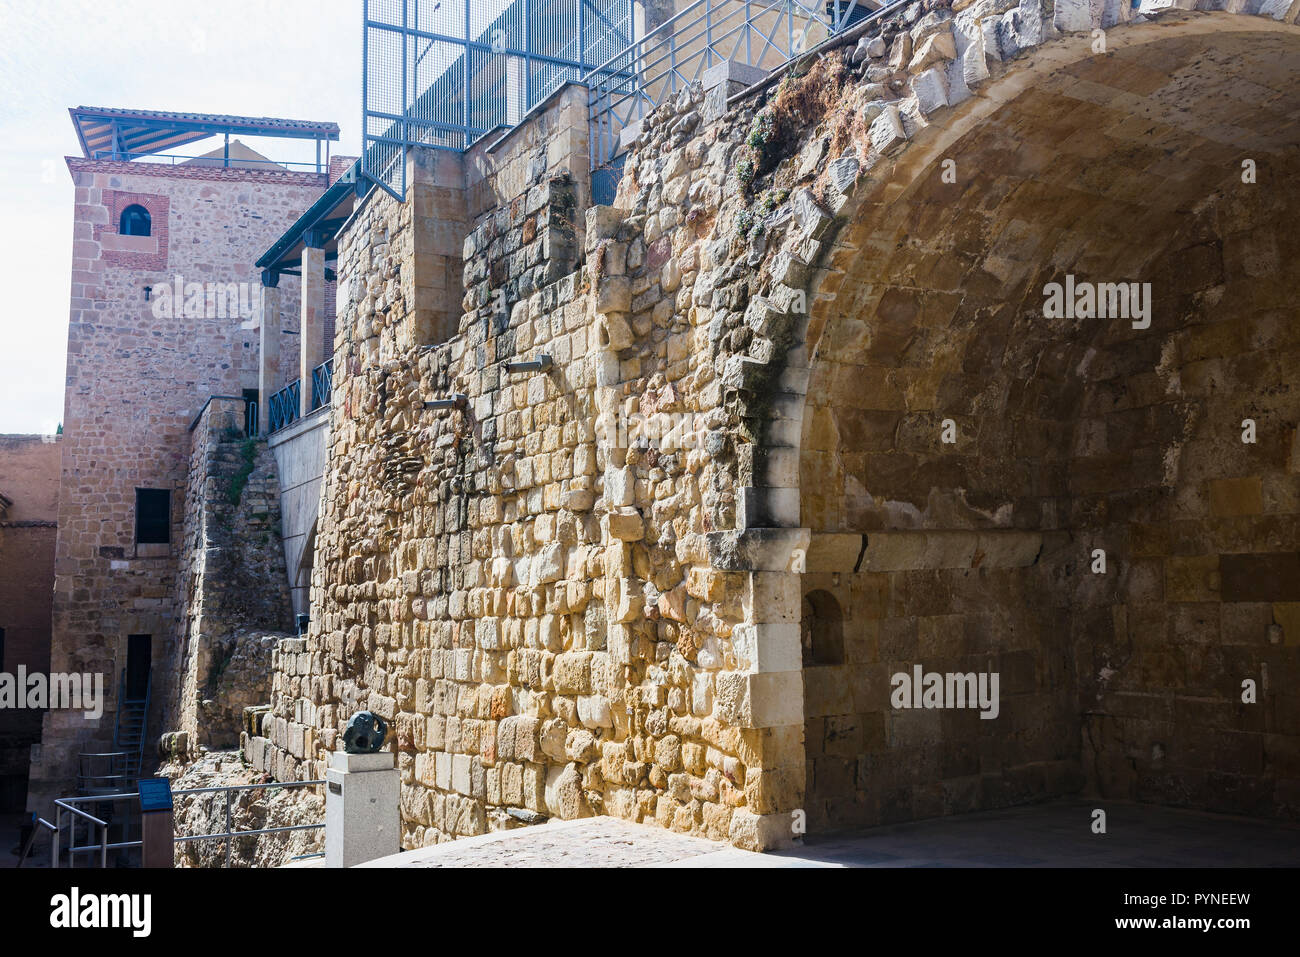 Remains and ruins of the old wall of the old city of Salamanca, Castilla y Leon, Spain, Europe - Stock Image